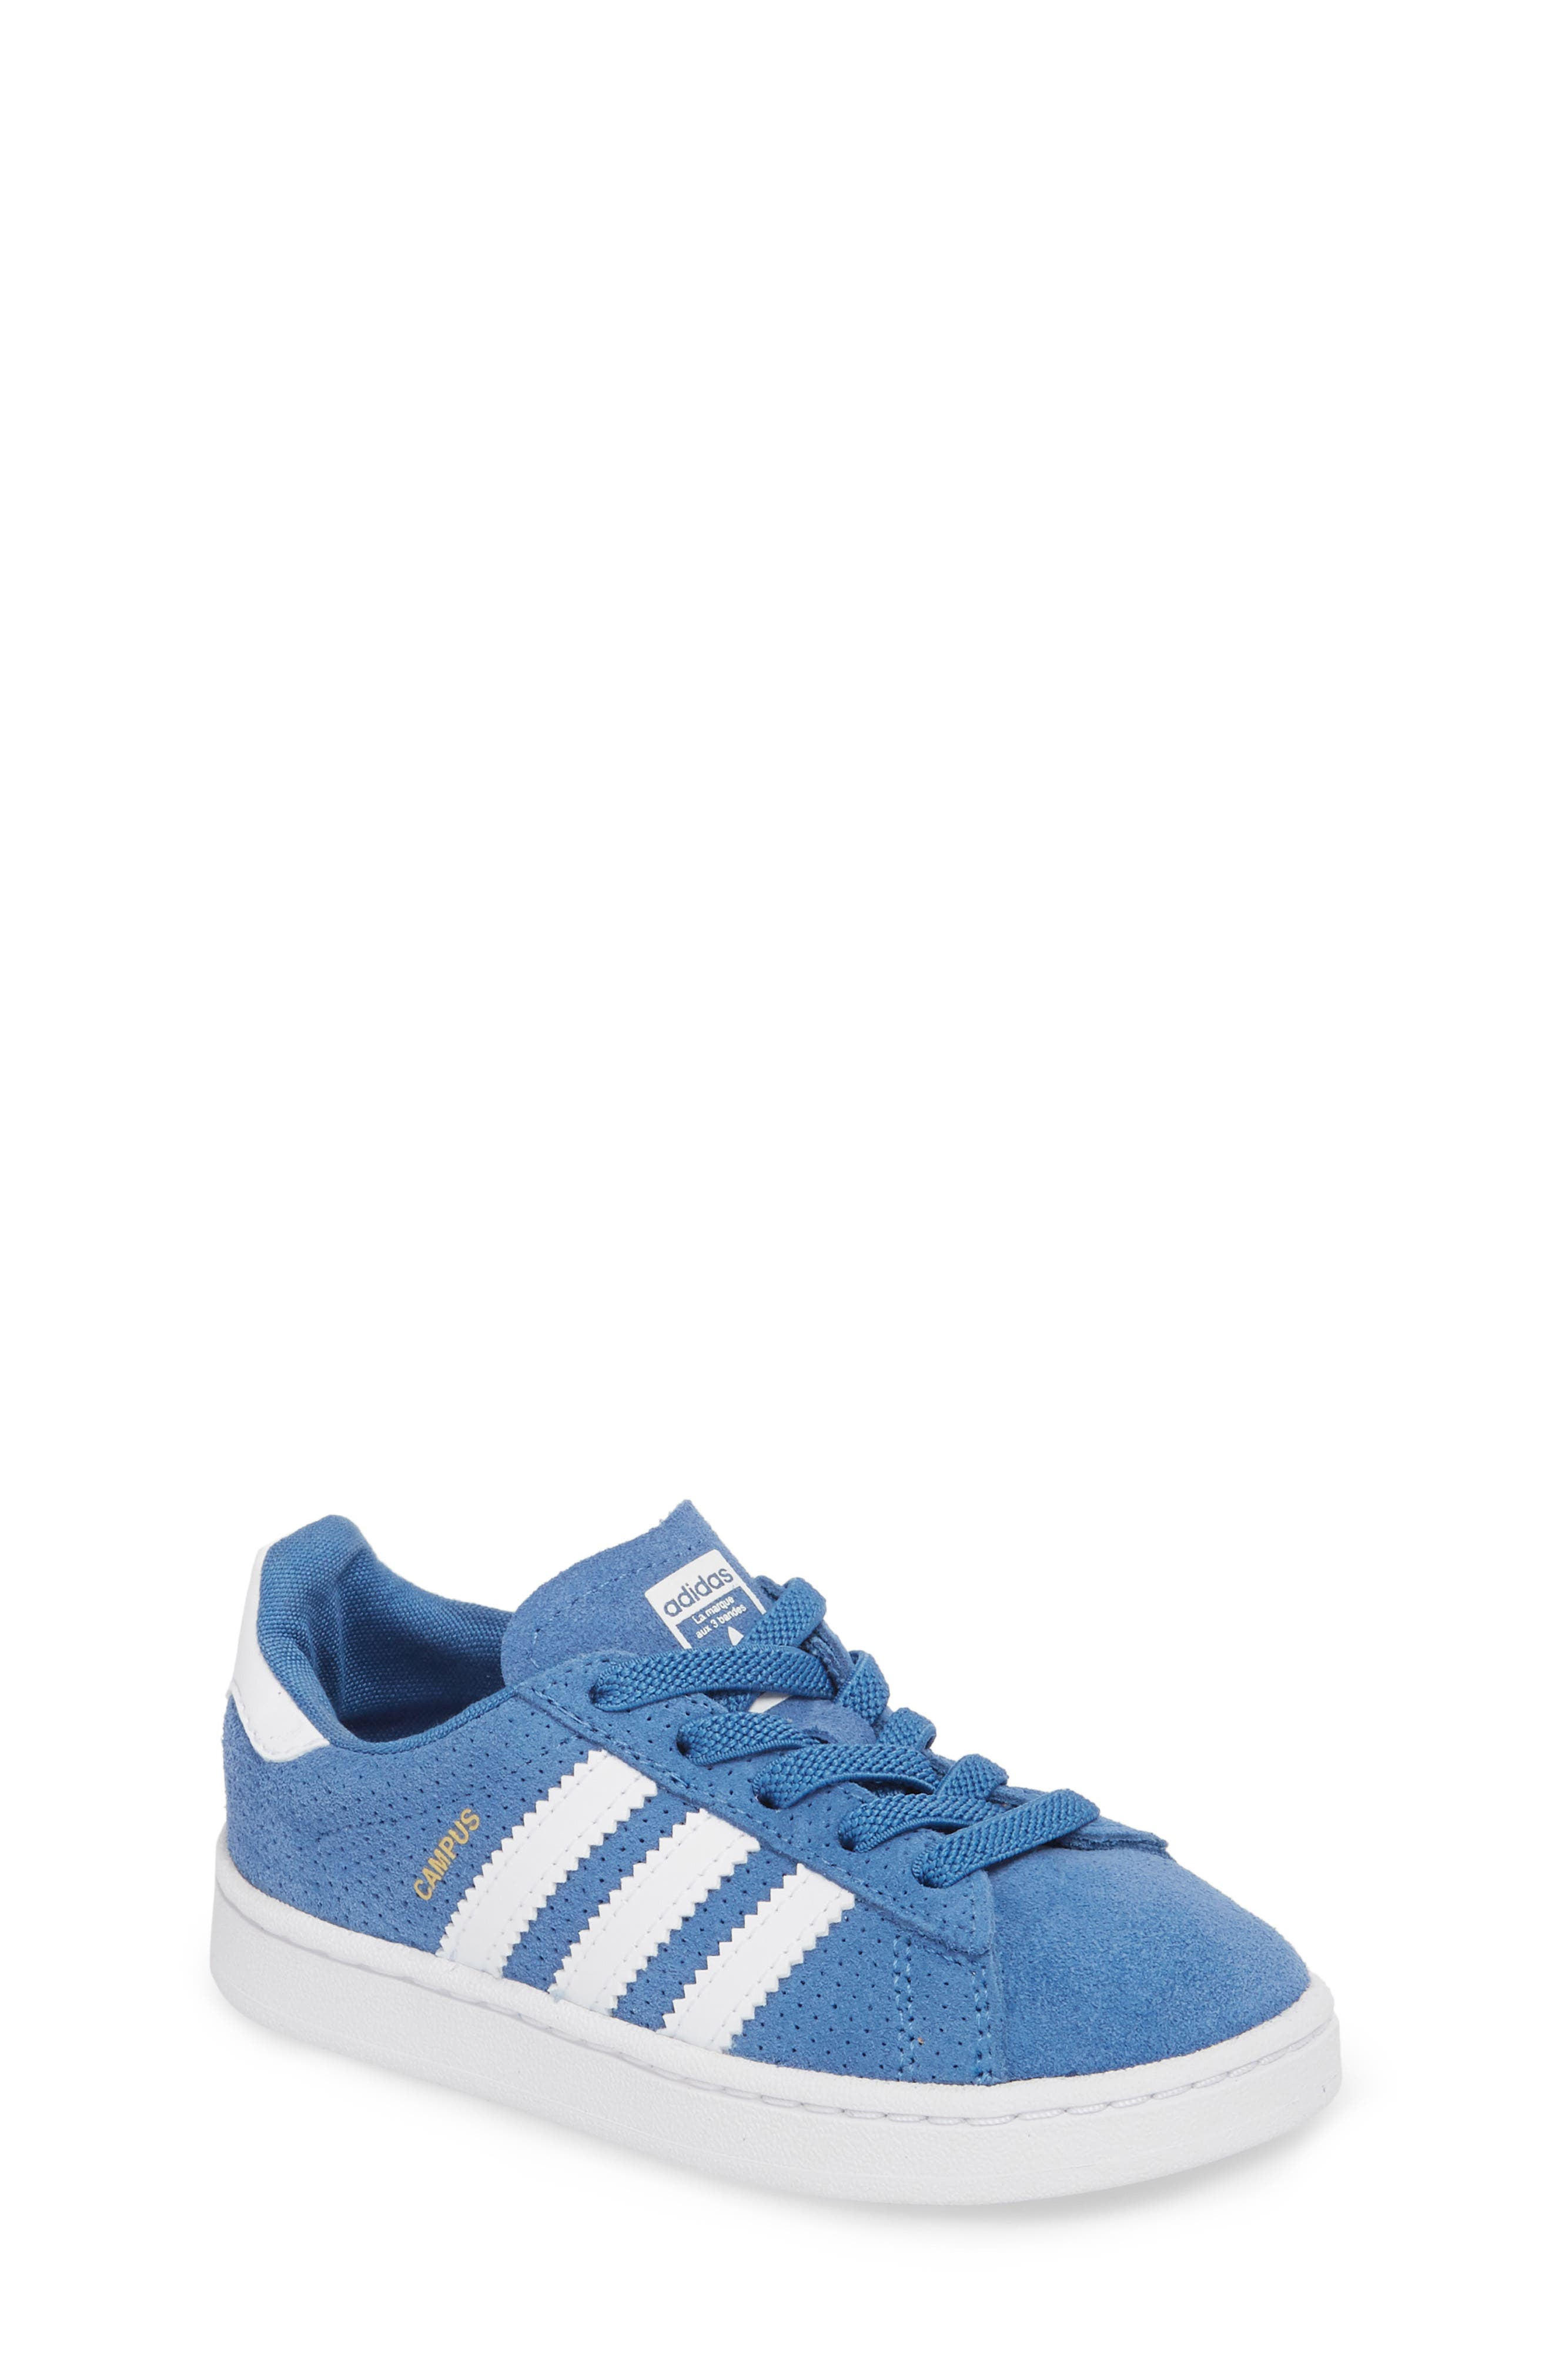 Campus J Sneaker,                         Main,                         color, Trace Royal / White / White